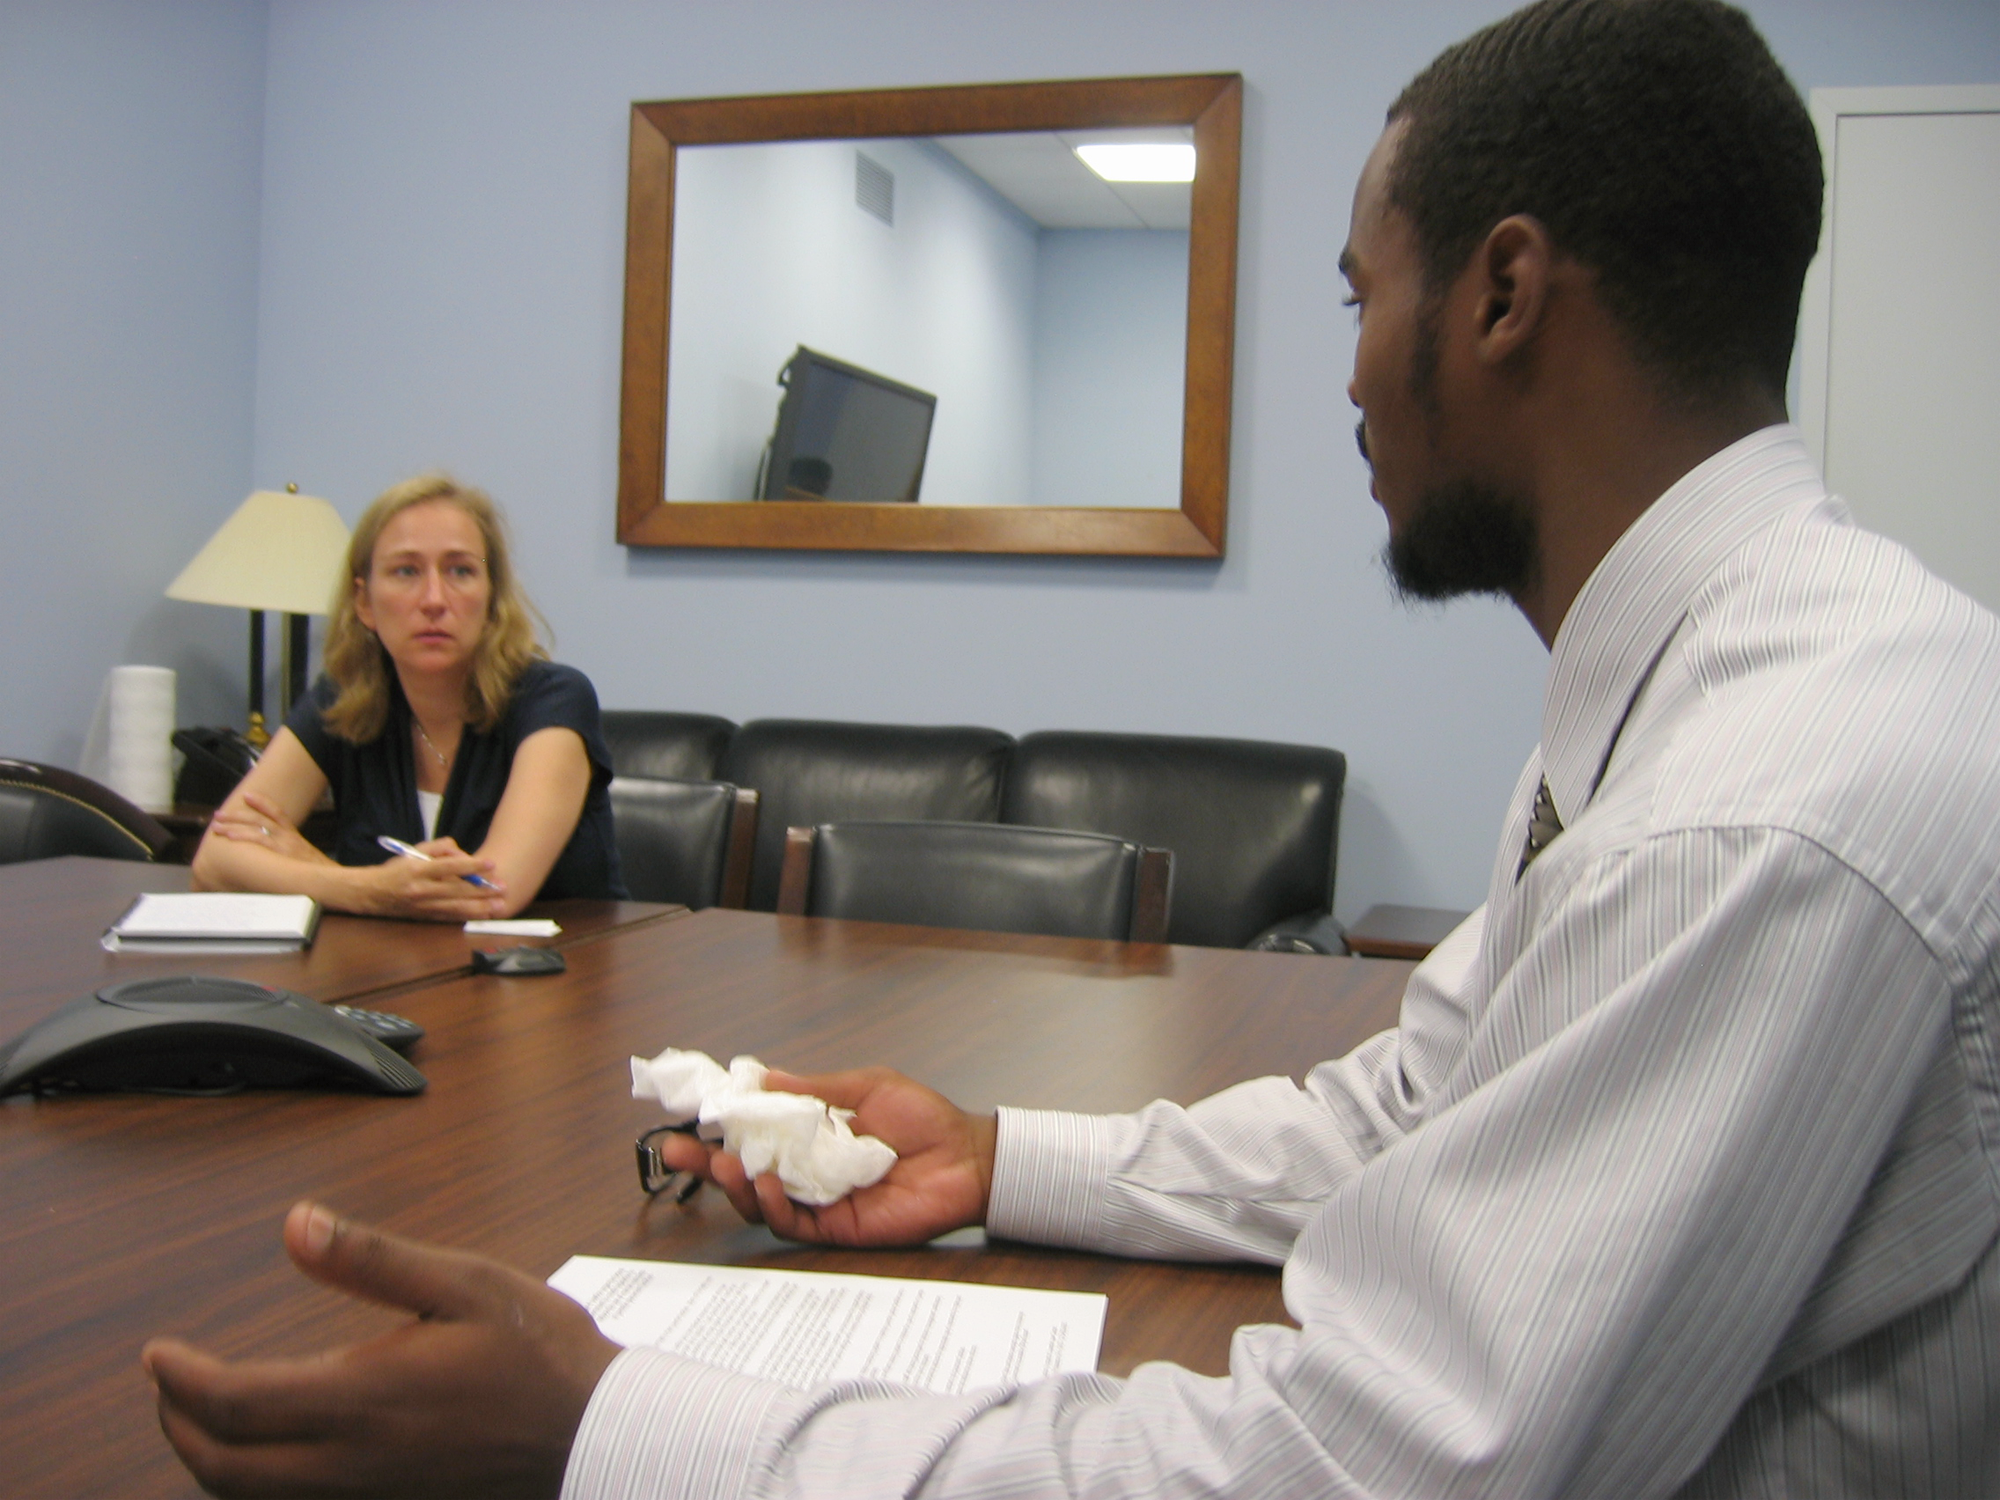 Youth advocate speaking with U.S. Senate staff.